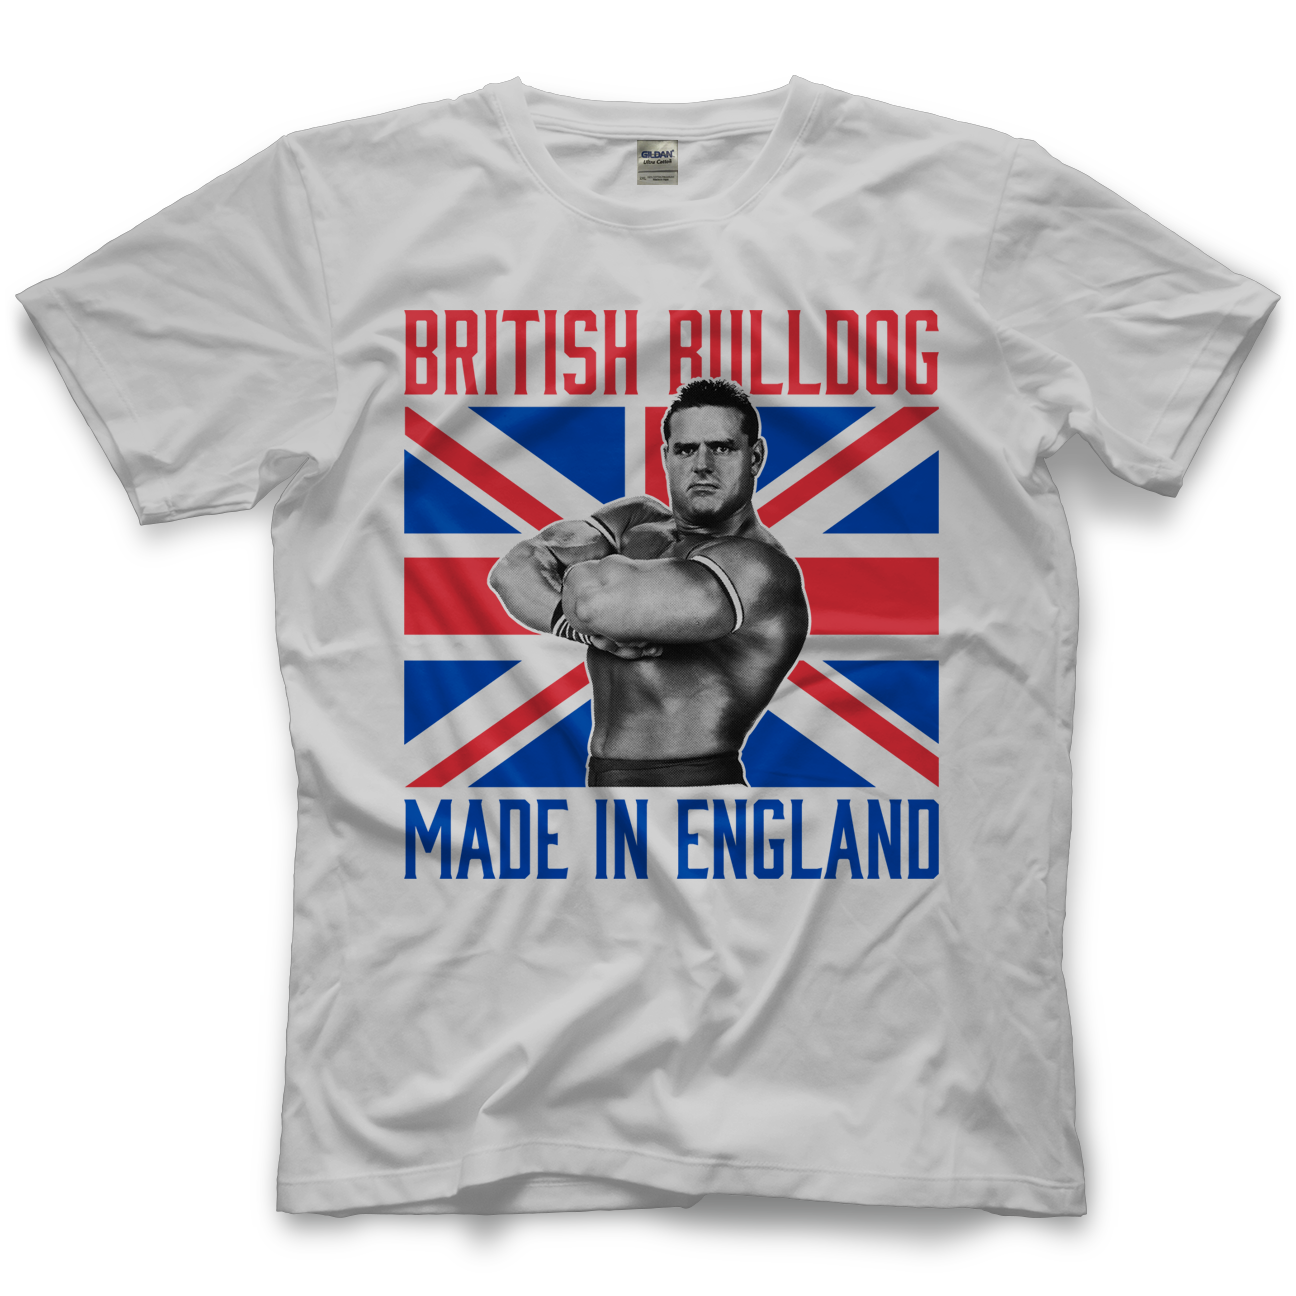 British Bulldog Made in England T-shirt